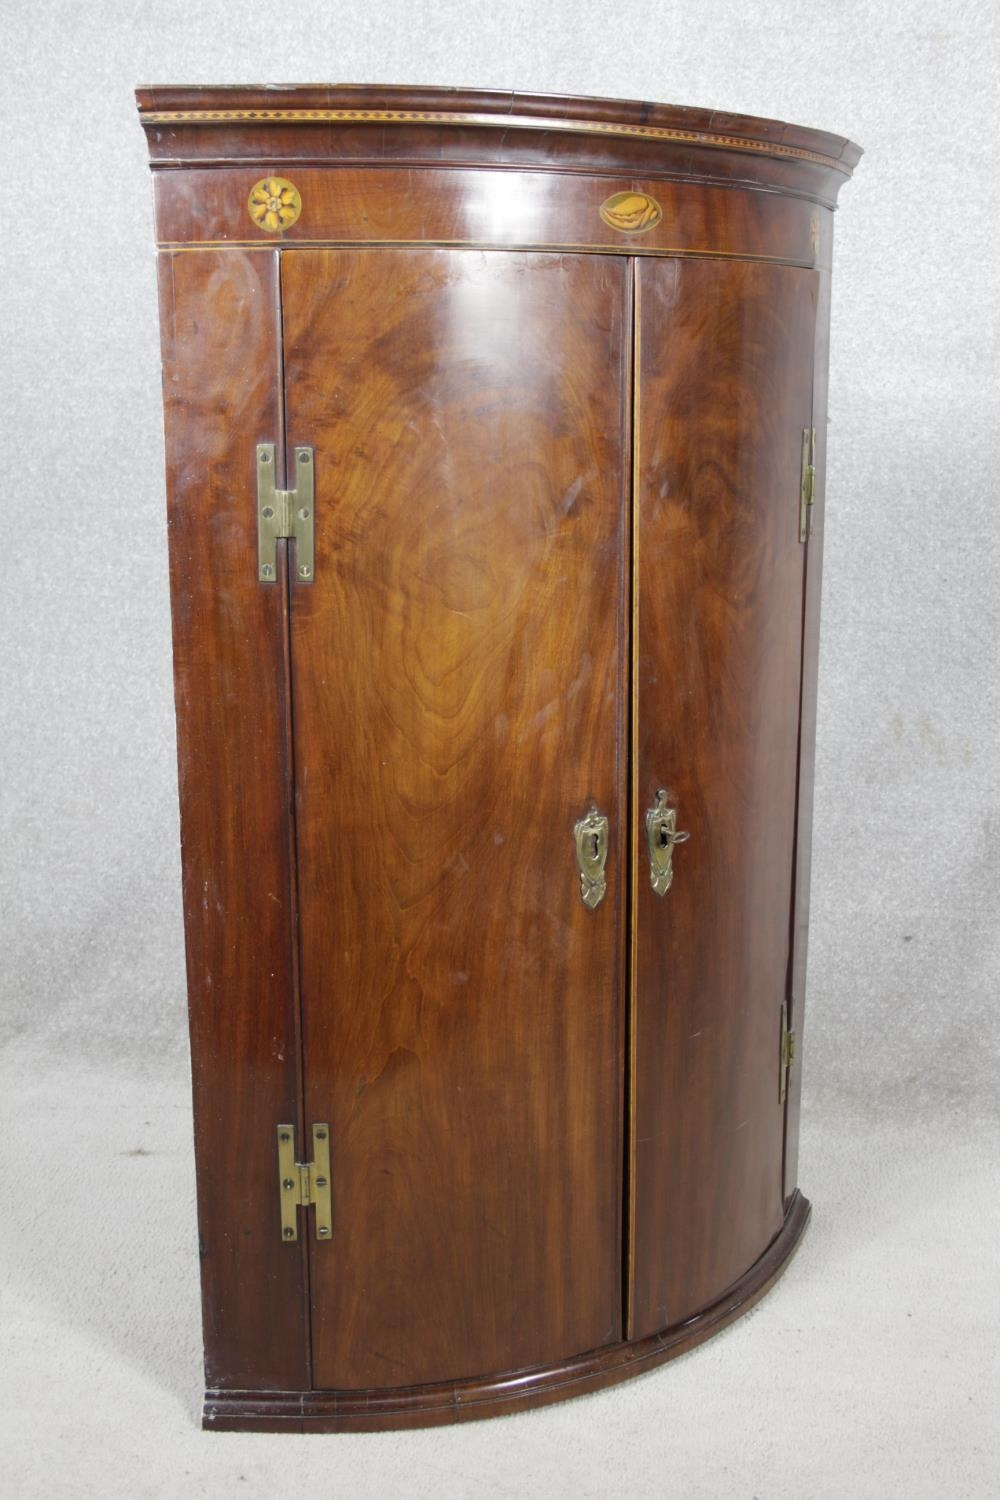 A Georgian figured mahogany bowfronted corner cupboard with satinwood and olivewood conch and floral - Image 2 of 14